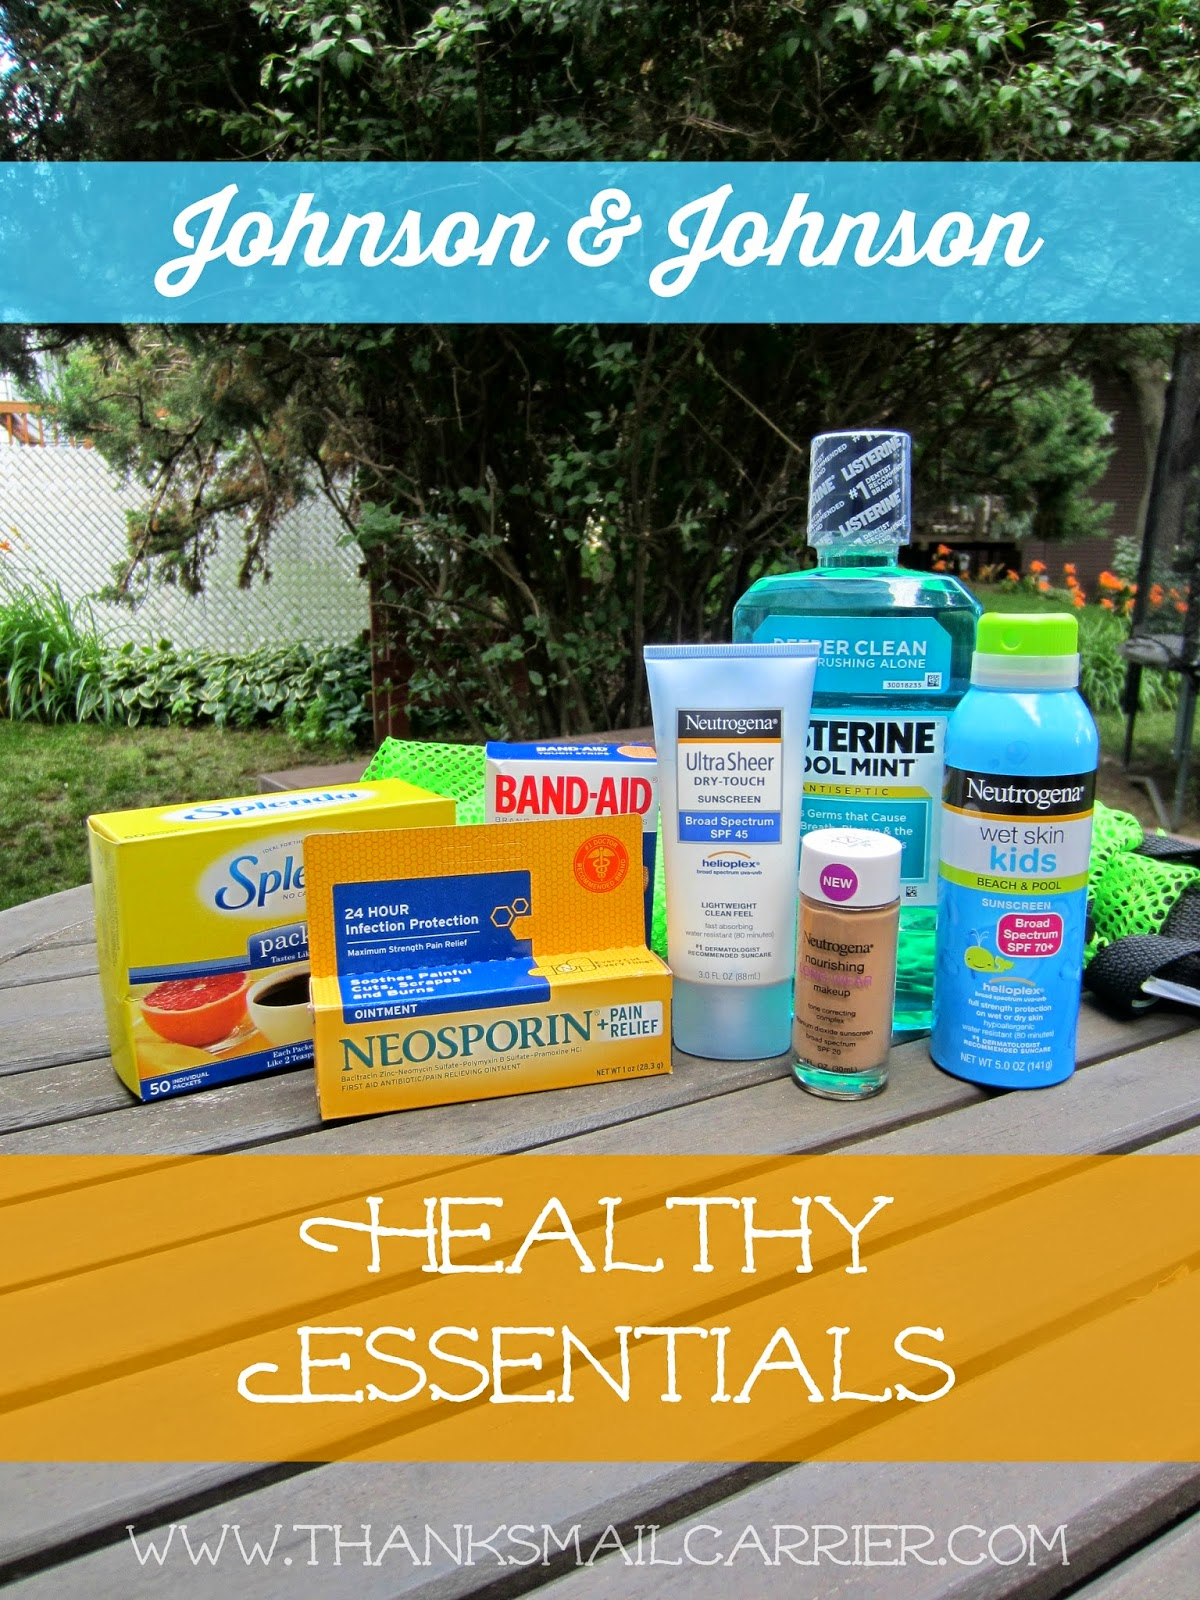 Johnson & Johnson Healthy Essentials